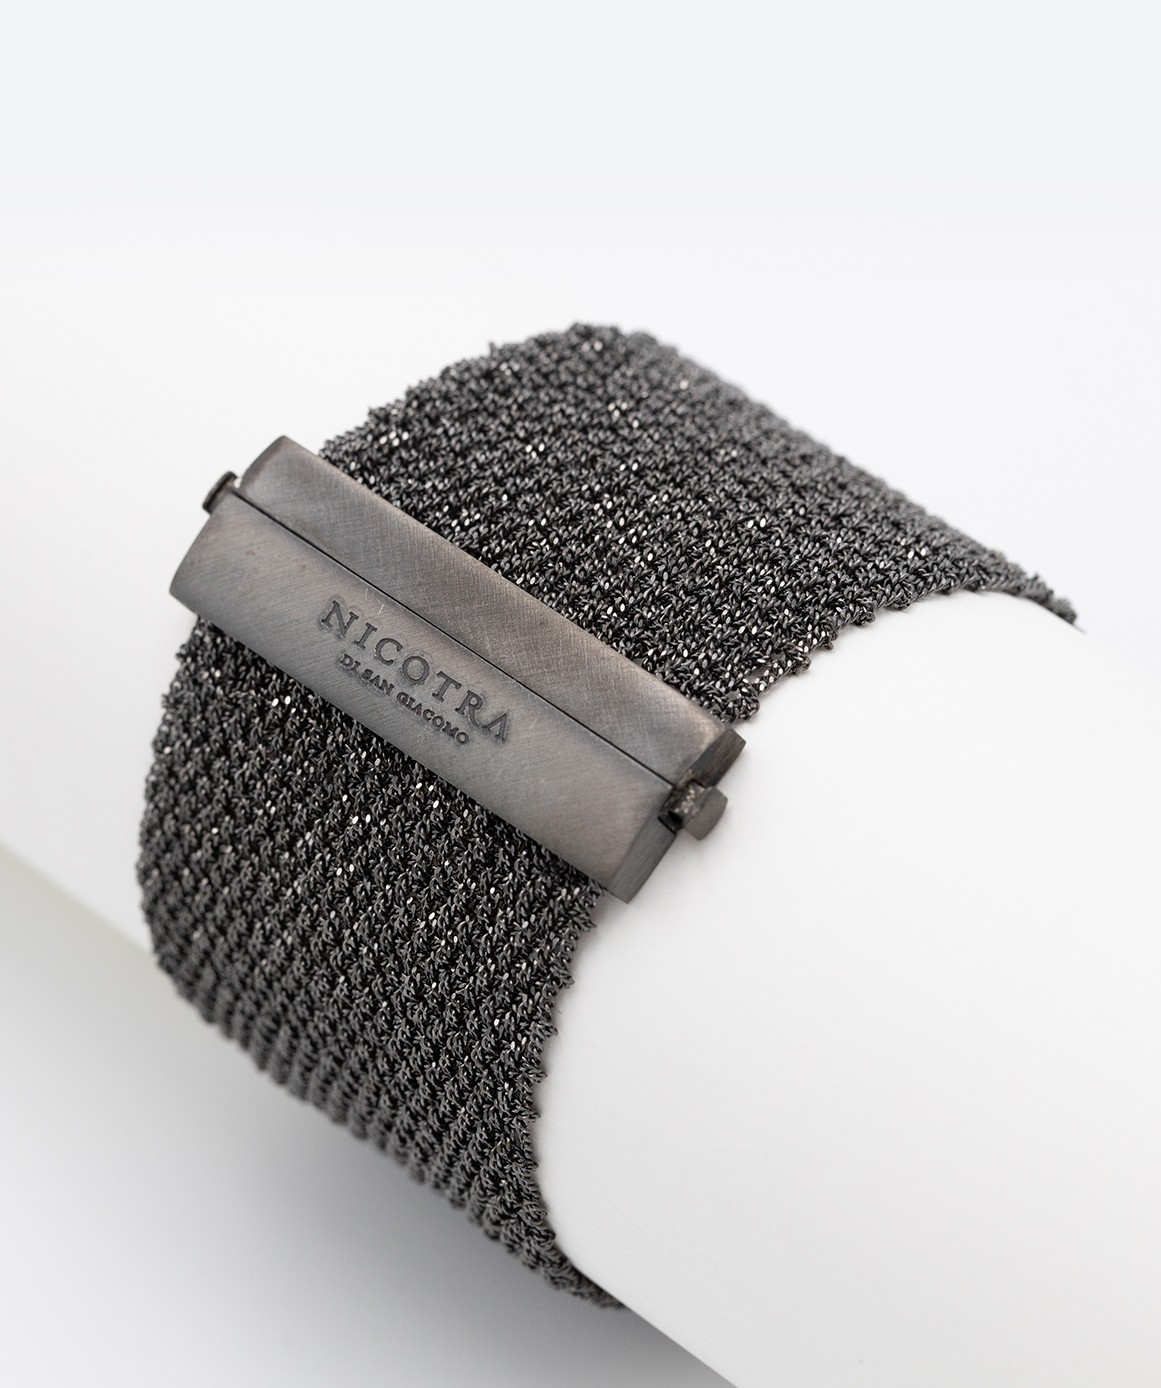 EXTRA DRY 1 CM Bracelet in Sterling Silver Ruthenium plated